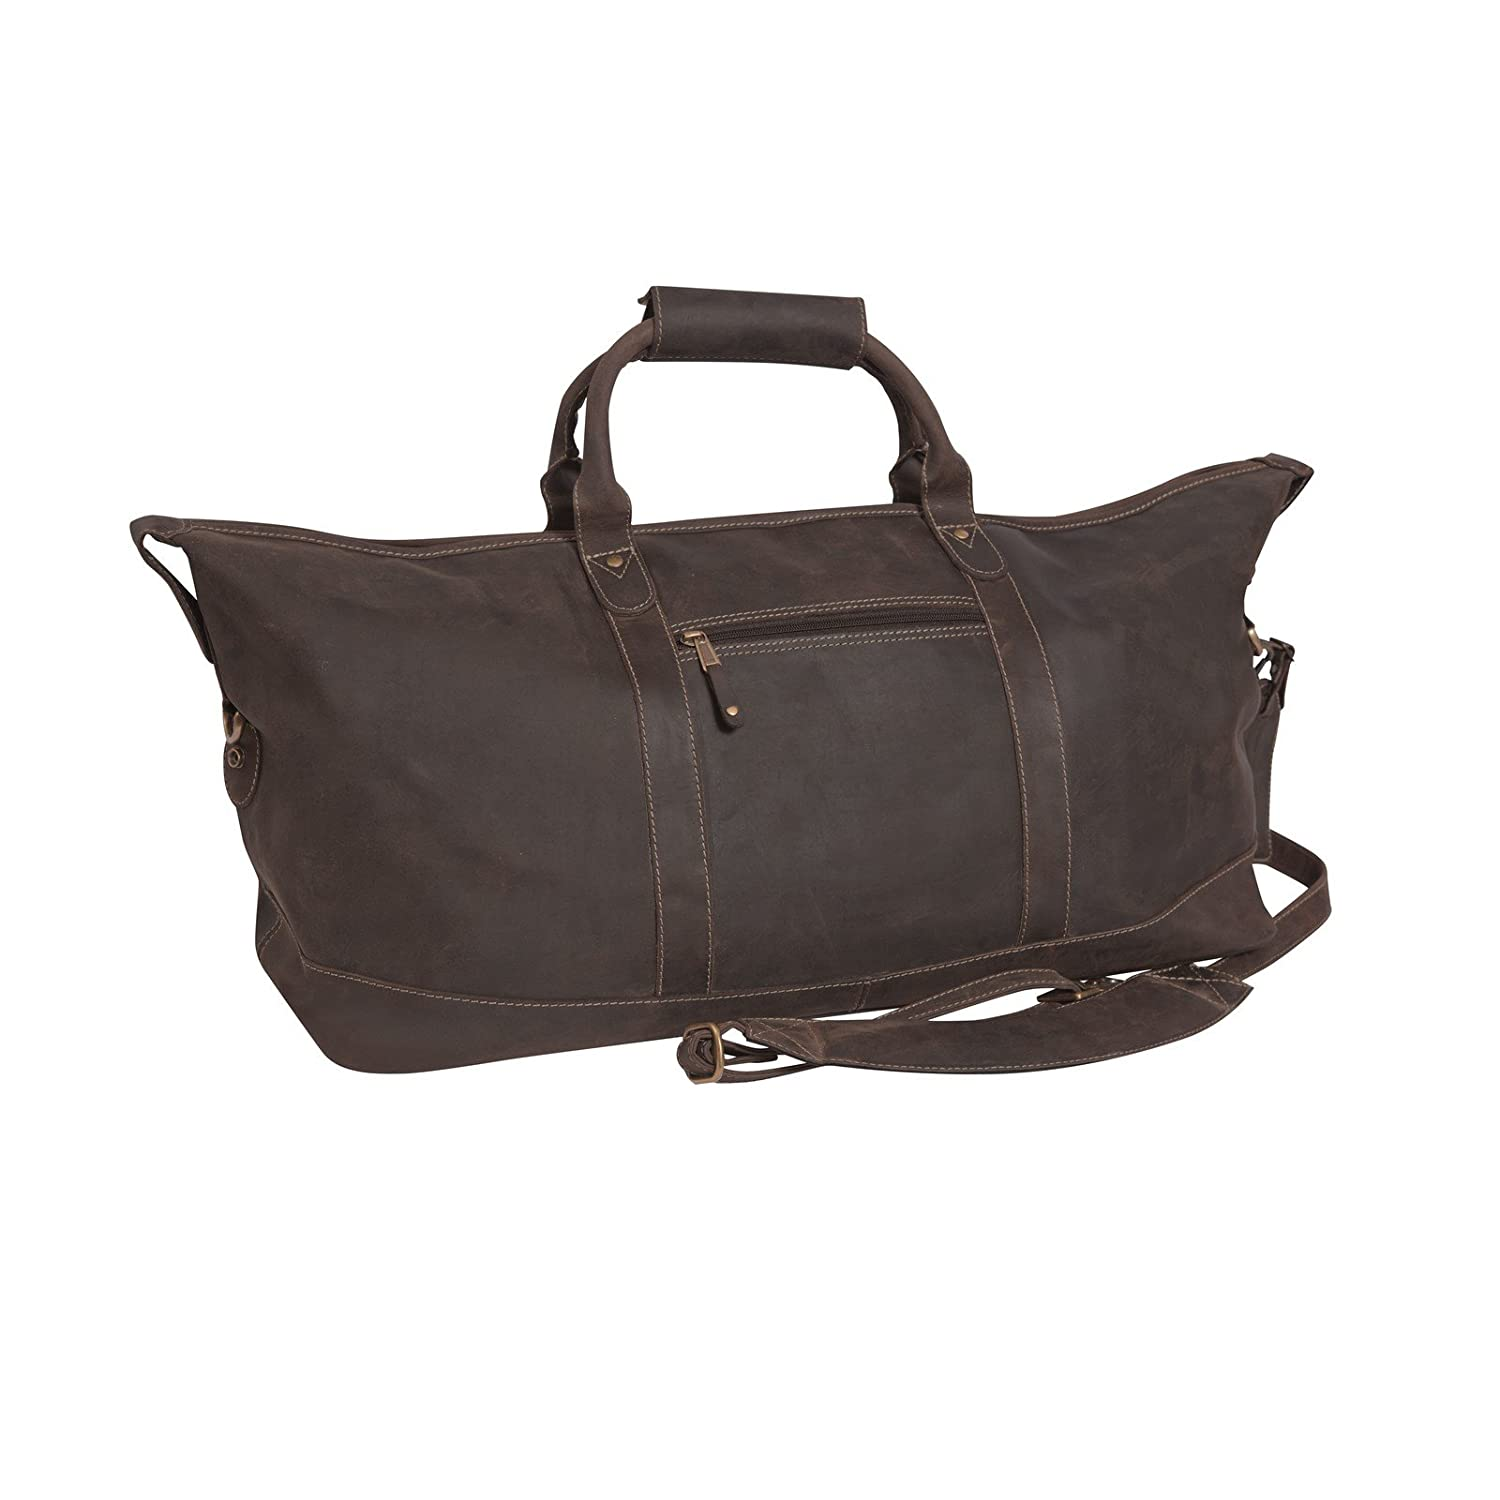 8ad1ff237bc Amazon.com | Canyon Outback Little River 22-inch Leather Duffel Bag, Distressed  Brown | Travel Duffels